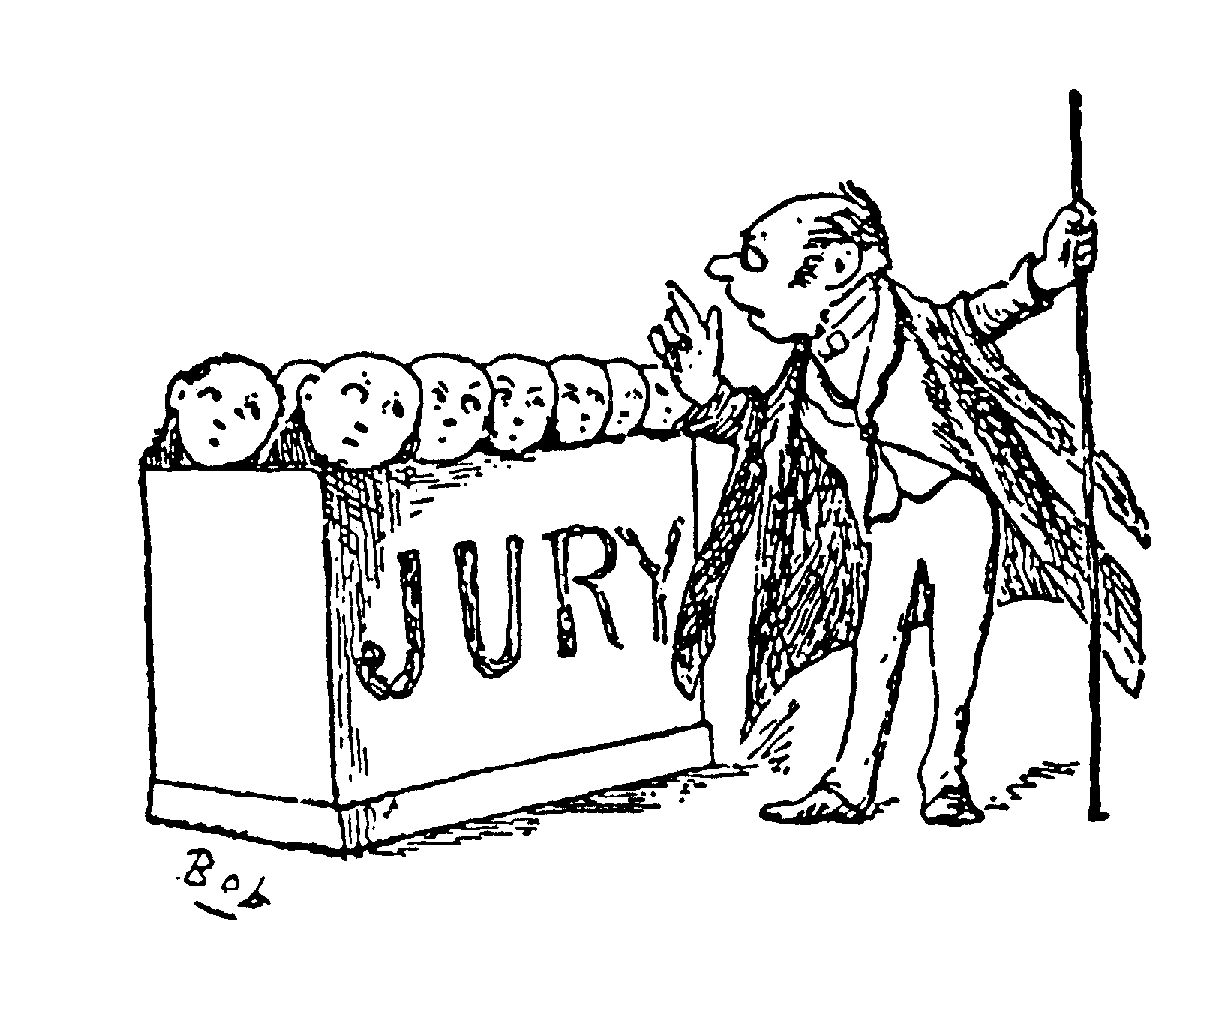 Drawn right speedy trial Free Clipart trial%20clipart Jury Clipart